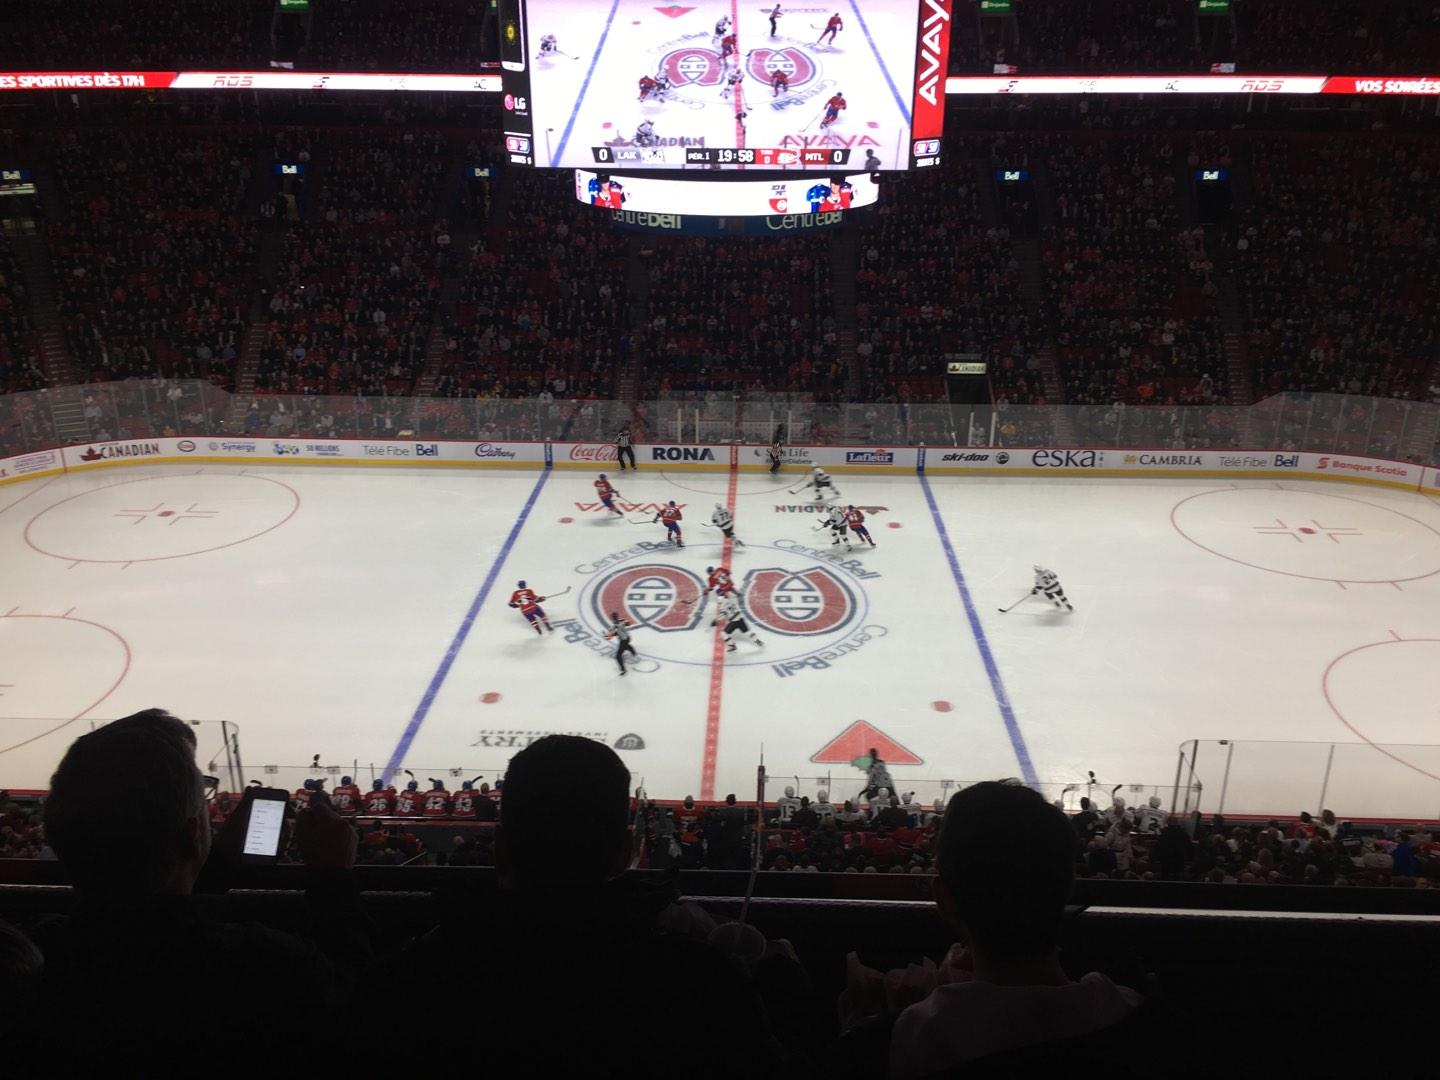 Centre Bell Section 201 Row C Seat 3